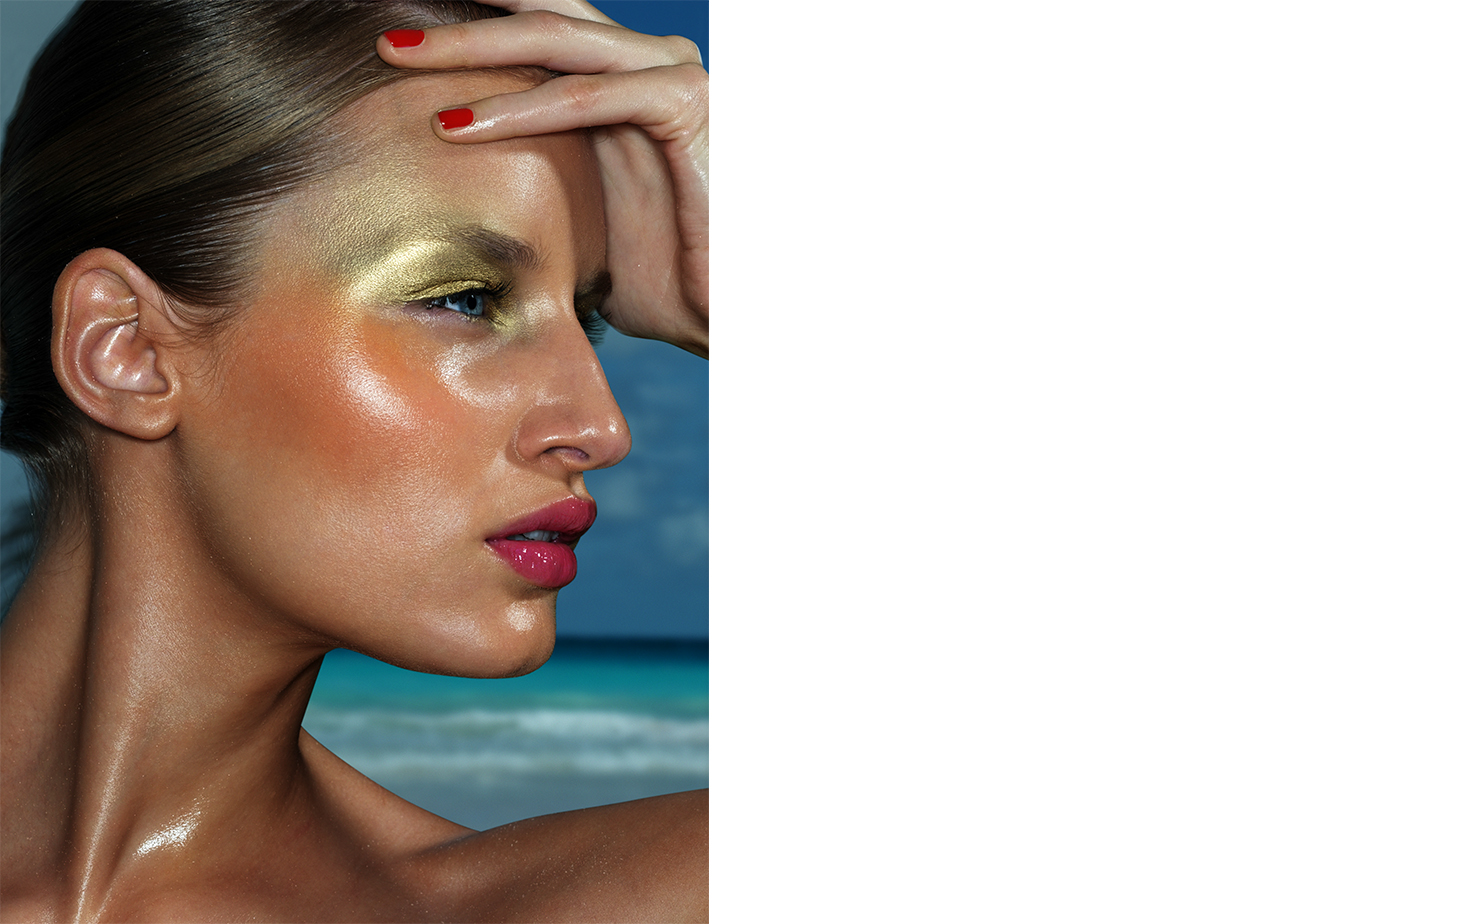 Flair MAKE UP COLORE   FASHION EDITOR Tiina Laakkonen MAKE UP Christian McCulloch